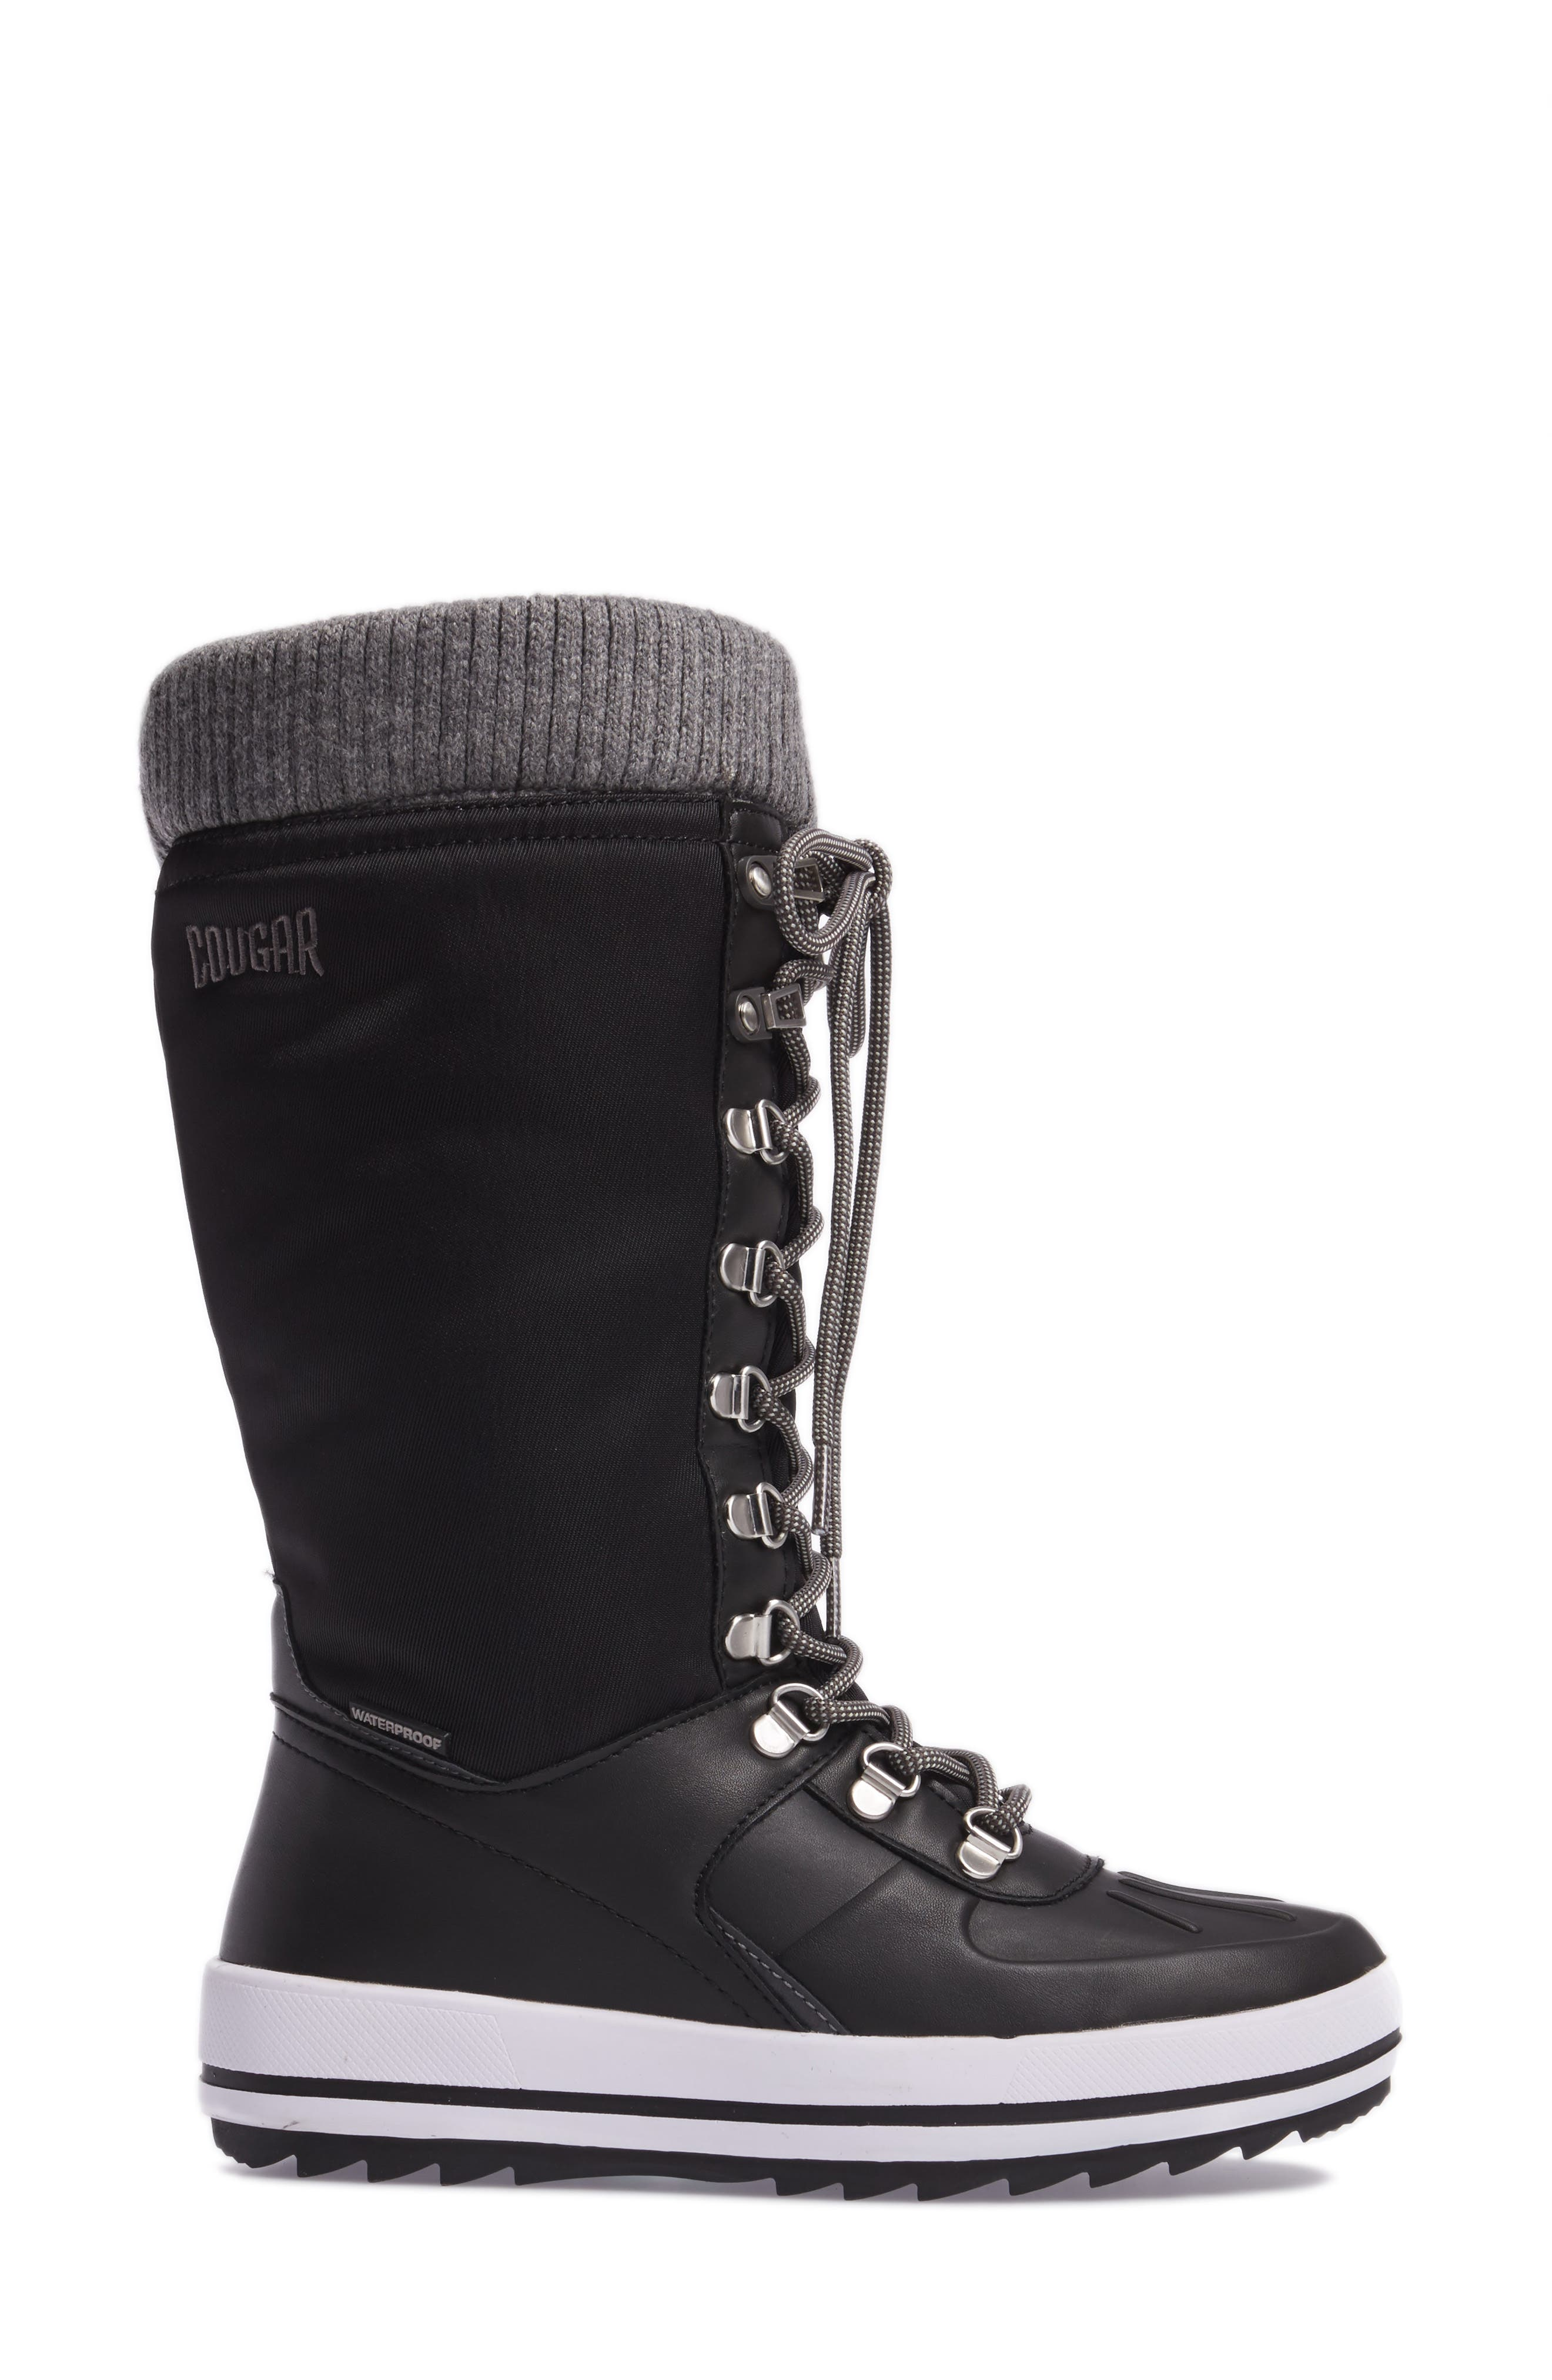 Vancouver Waterproof Winter Boot,                             Alternate thumbnail 7, color,